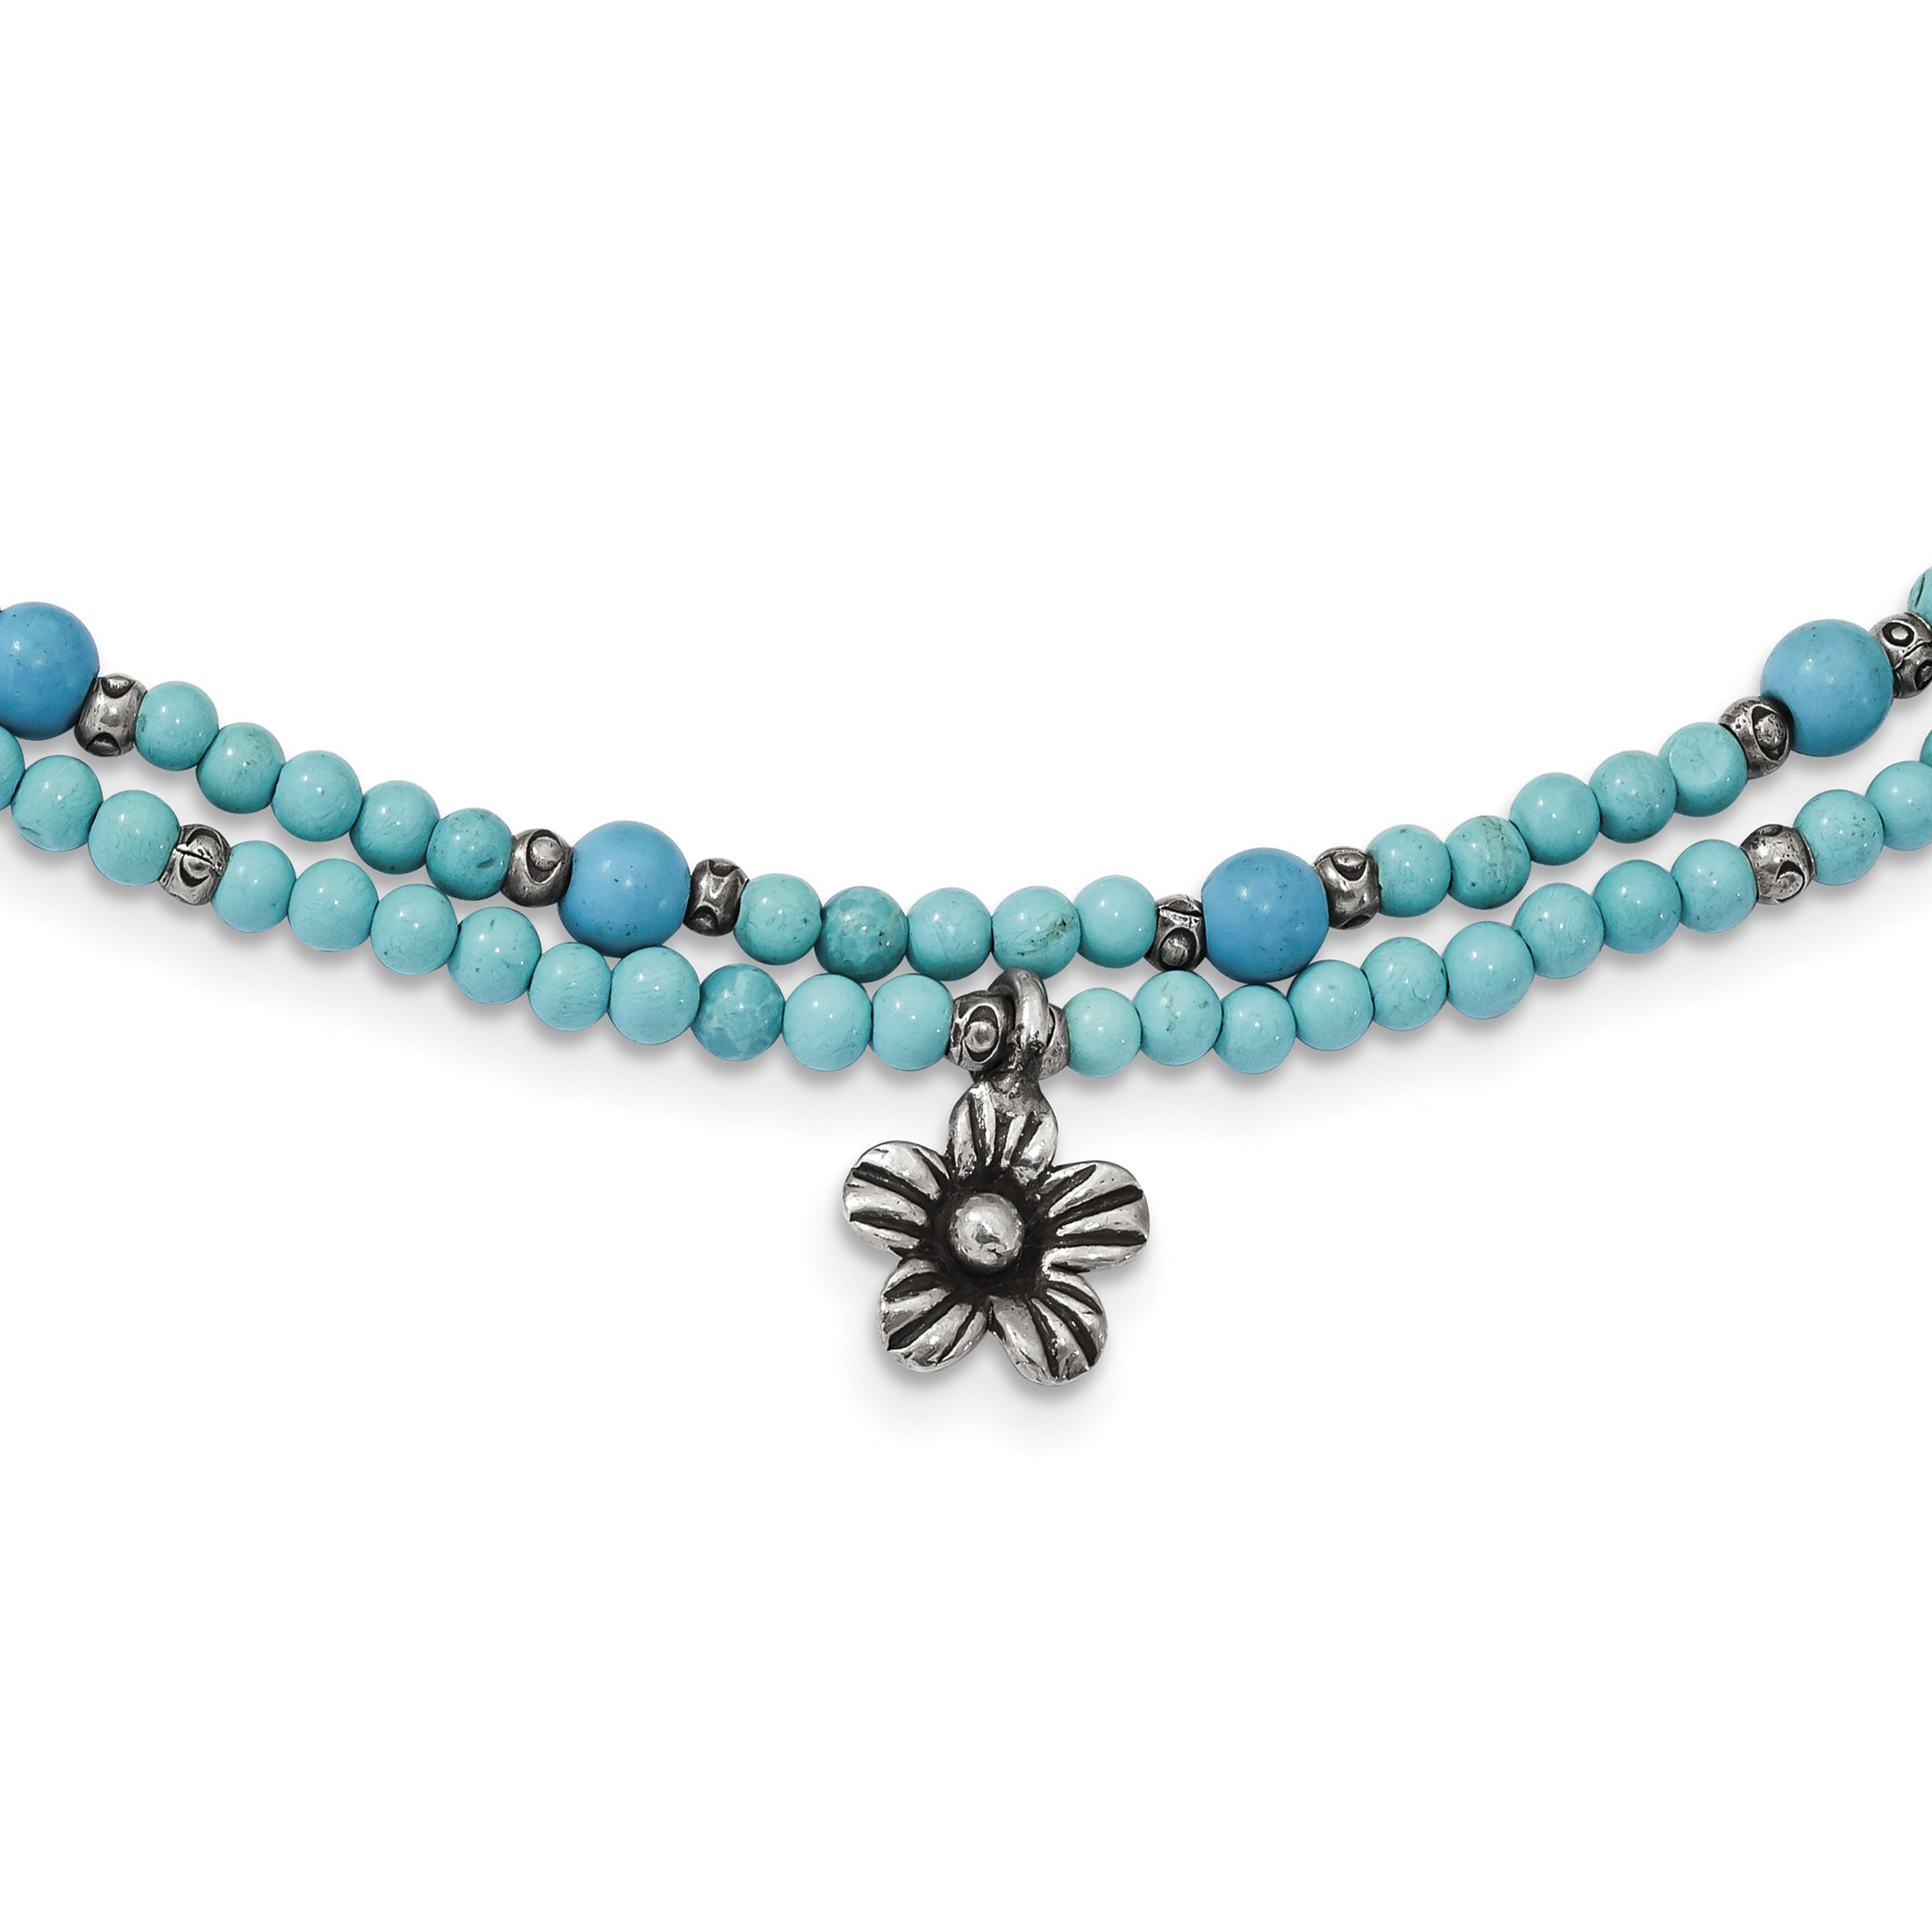 ICE CARATS 925 Sterling Silver Howlite/recon. Magnesite 2 Strand Flower Inch Extension Chain Necklace Natural Stone Fine Jewelry Gift Set For Women Heart